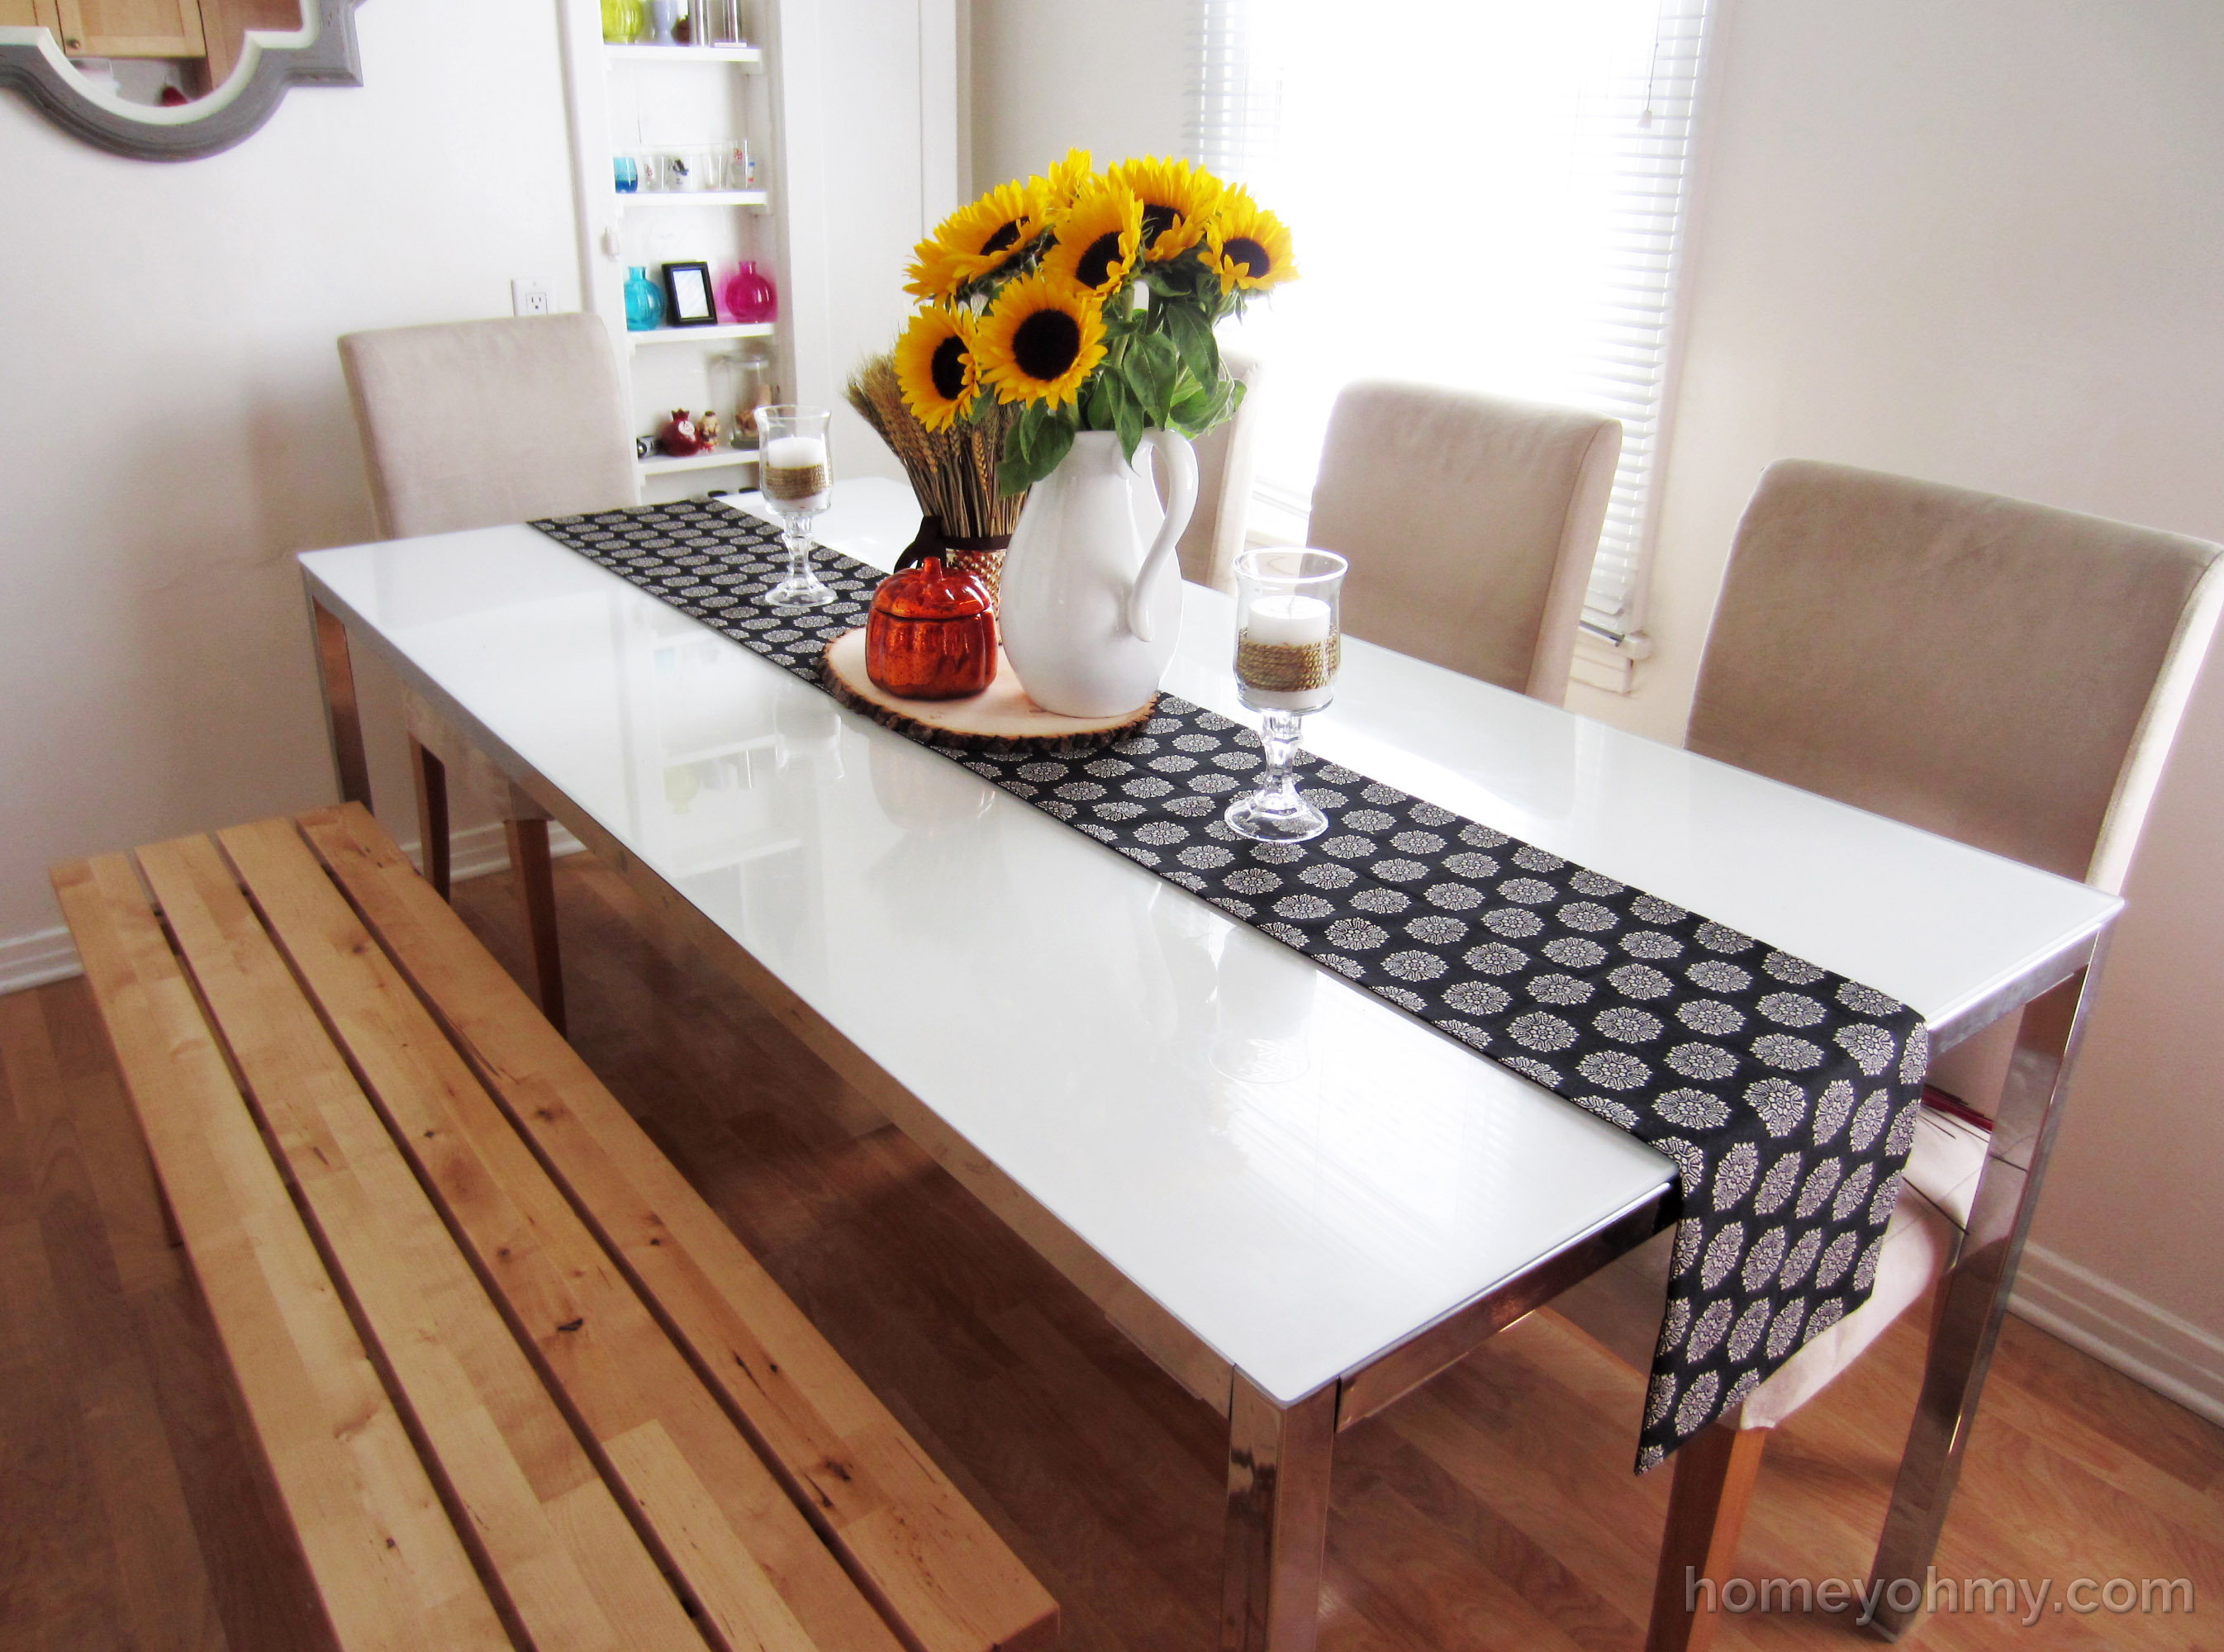 Diy no sew table runner homey oh my diy no sew table runner 4 solutioingenieria Gallery